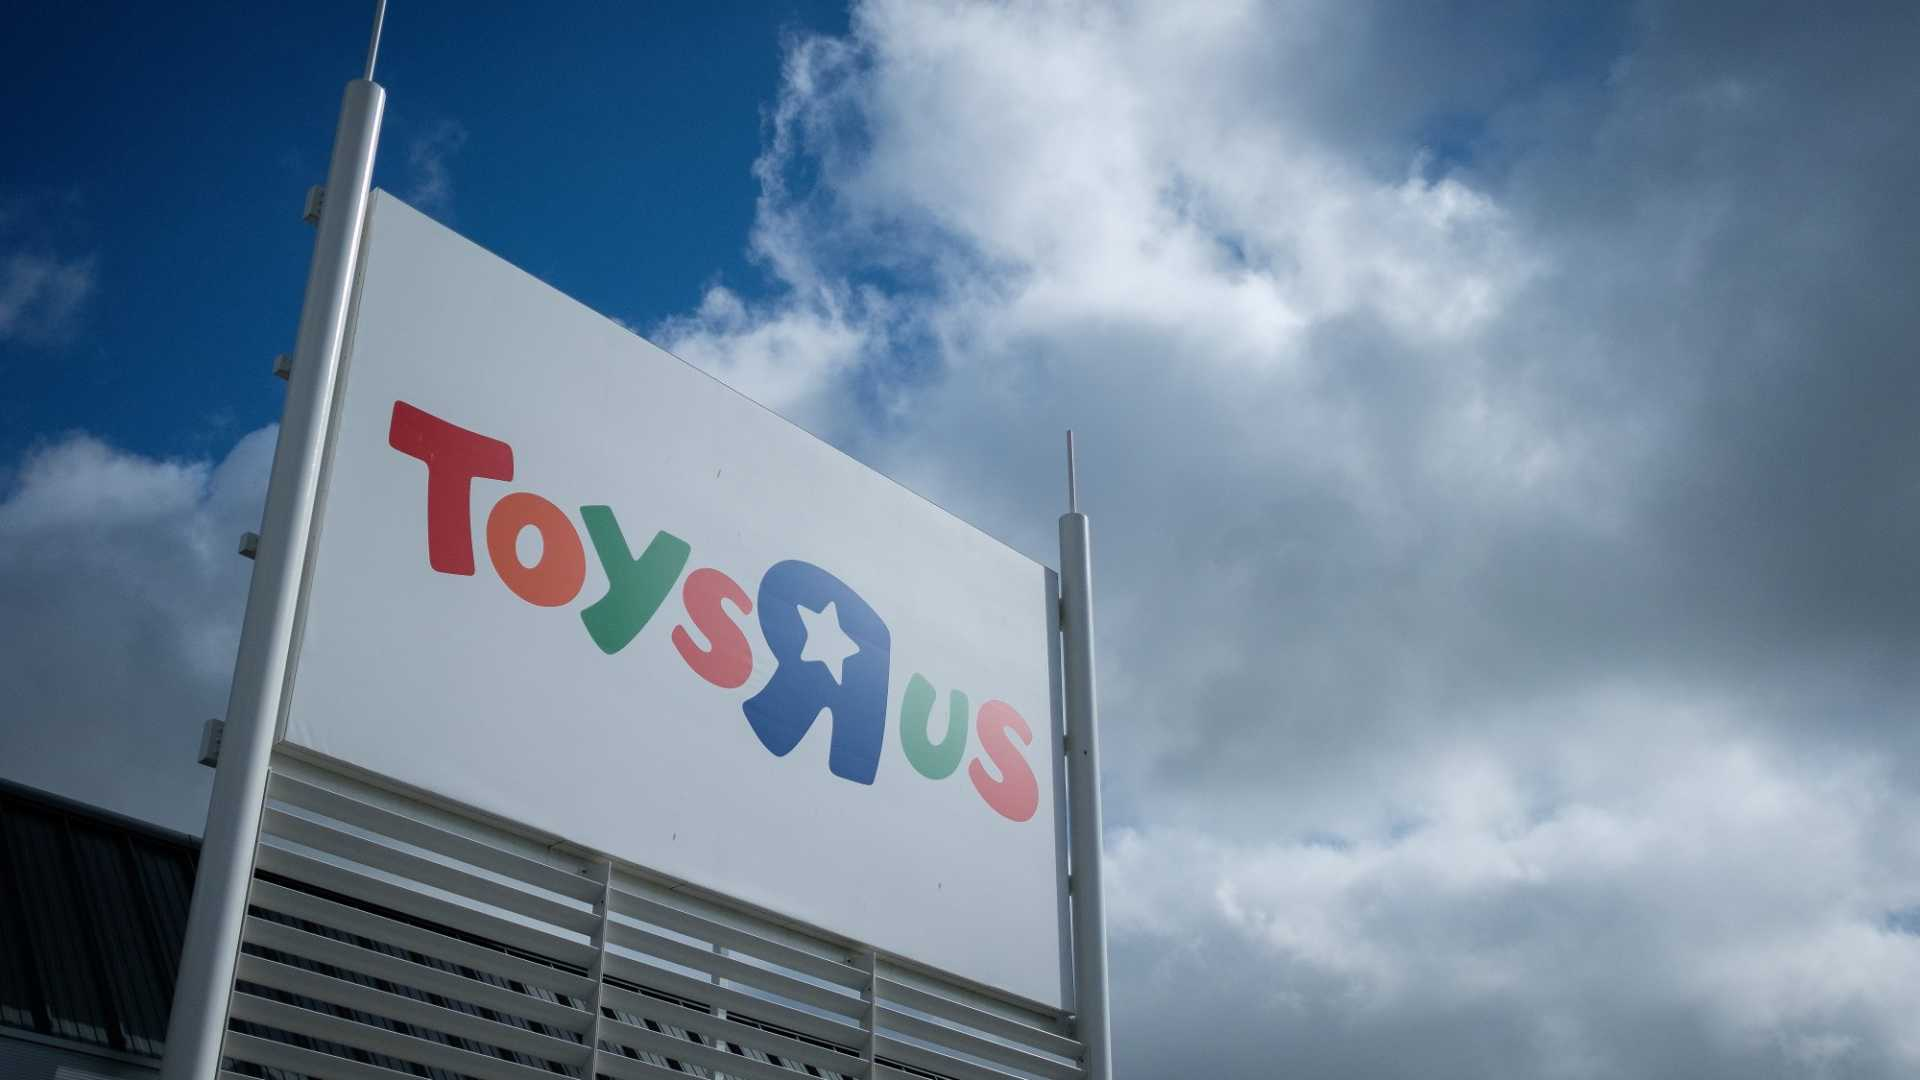 """The Death of a Toy Retailer: How a Lack of Digital Transformation Helped Destroy Toys """"R"""" Us"""